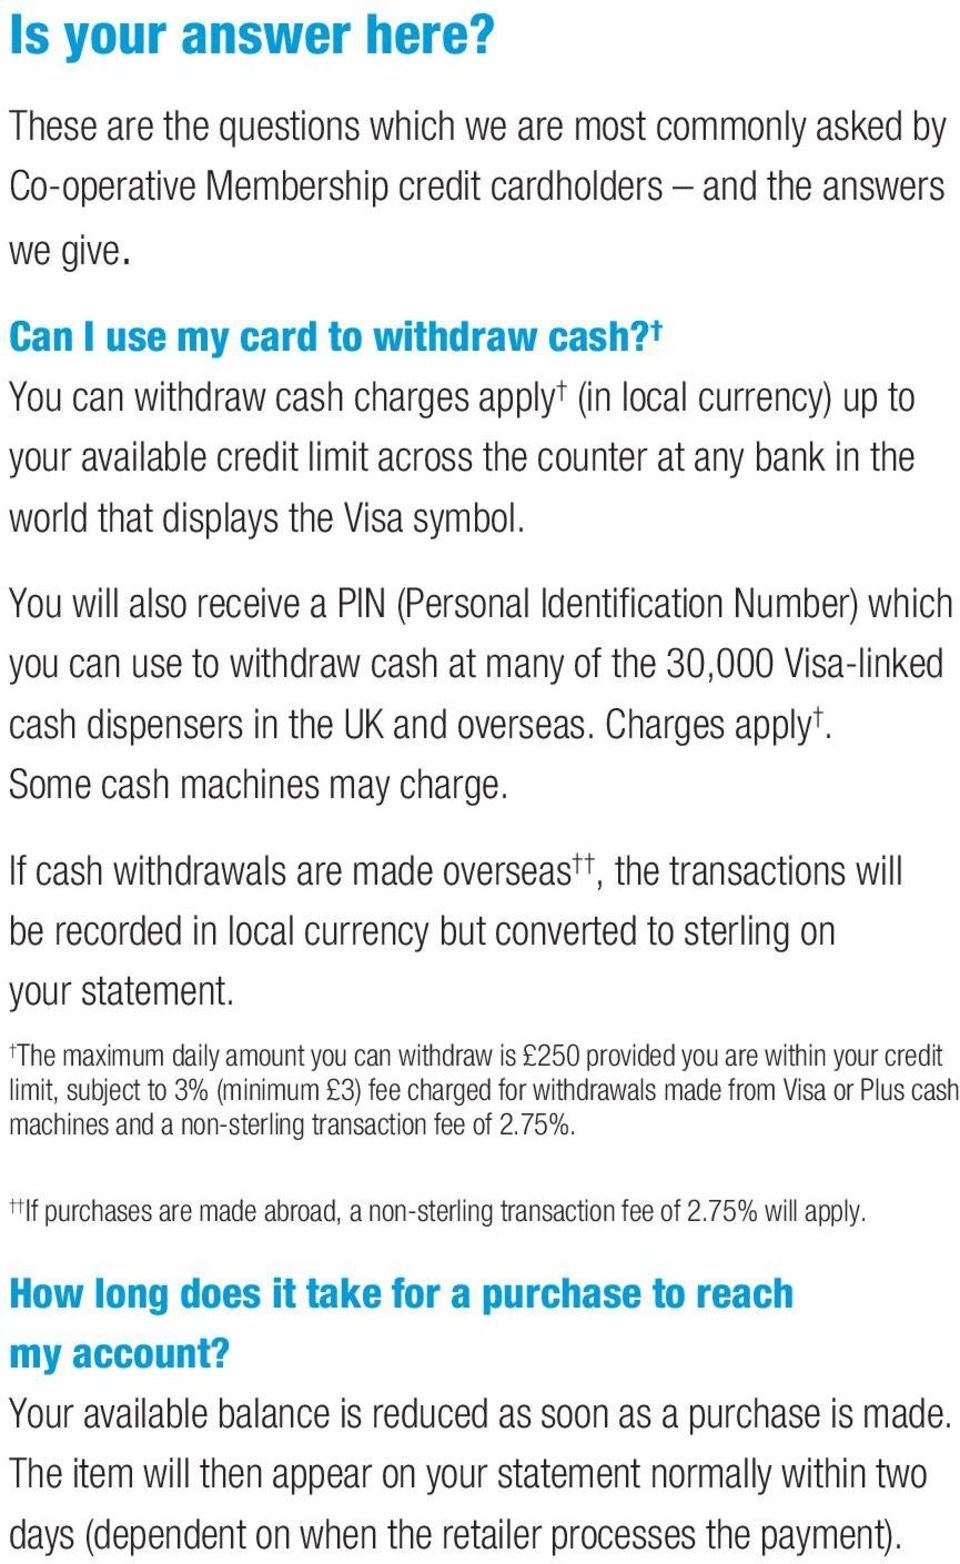 You will also receive a PIN (Personal Identification Number) which you can use to withdraw cash at many of the 30,000 Visa-linked cash dispensers in the UK and overseas. Charges apply.